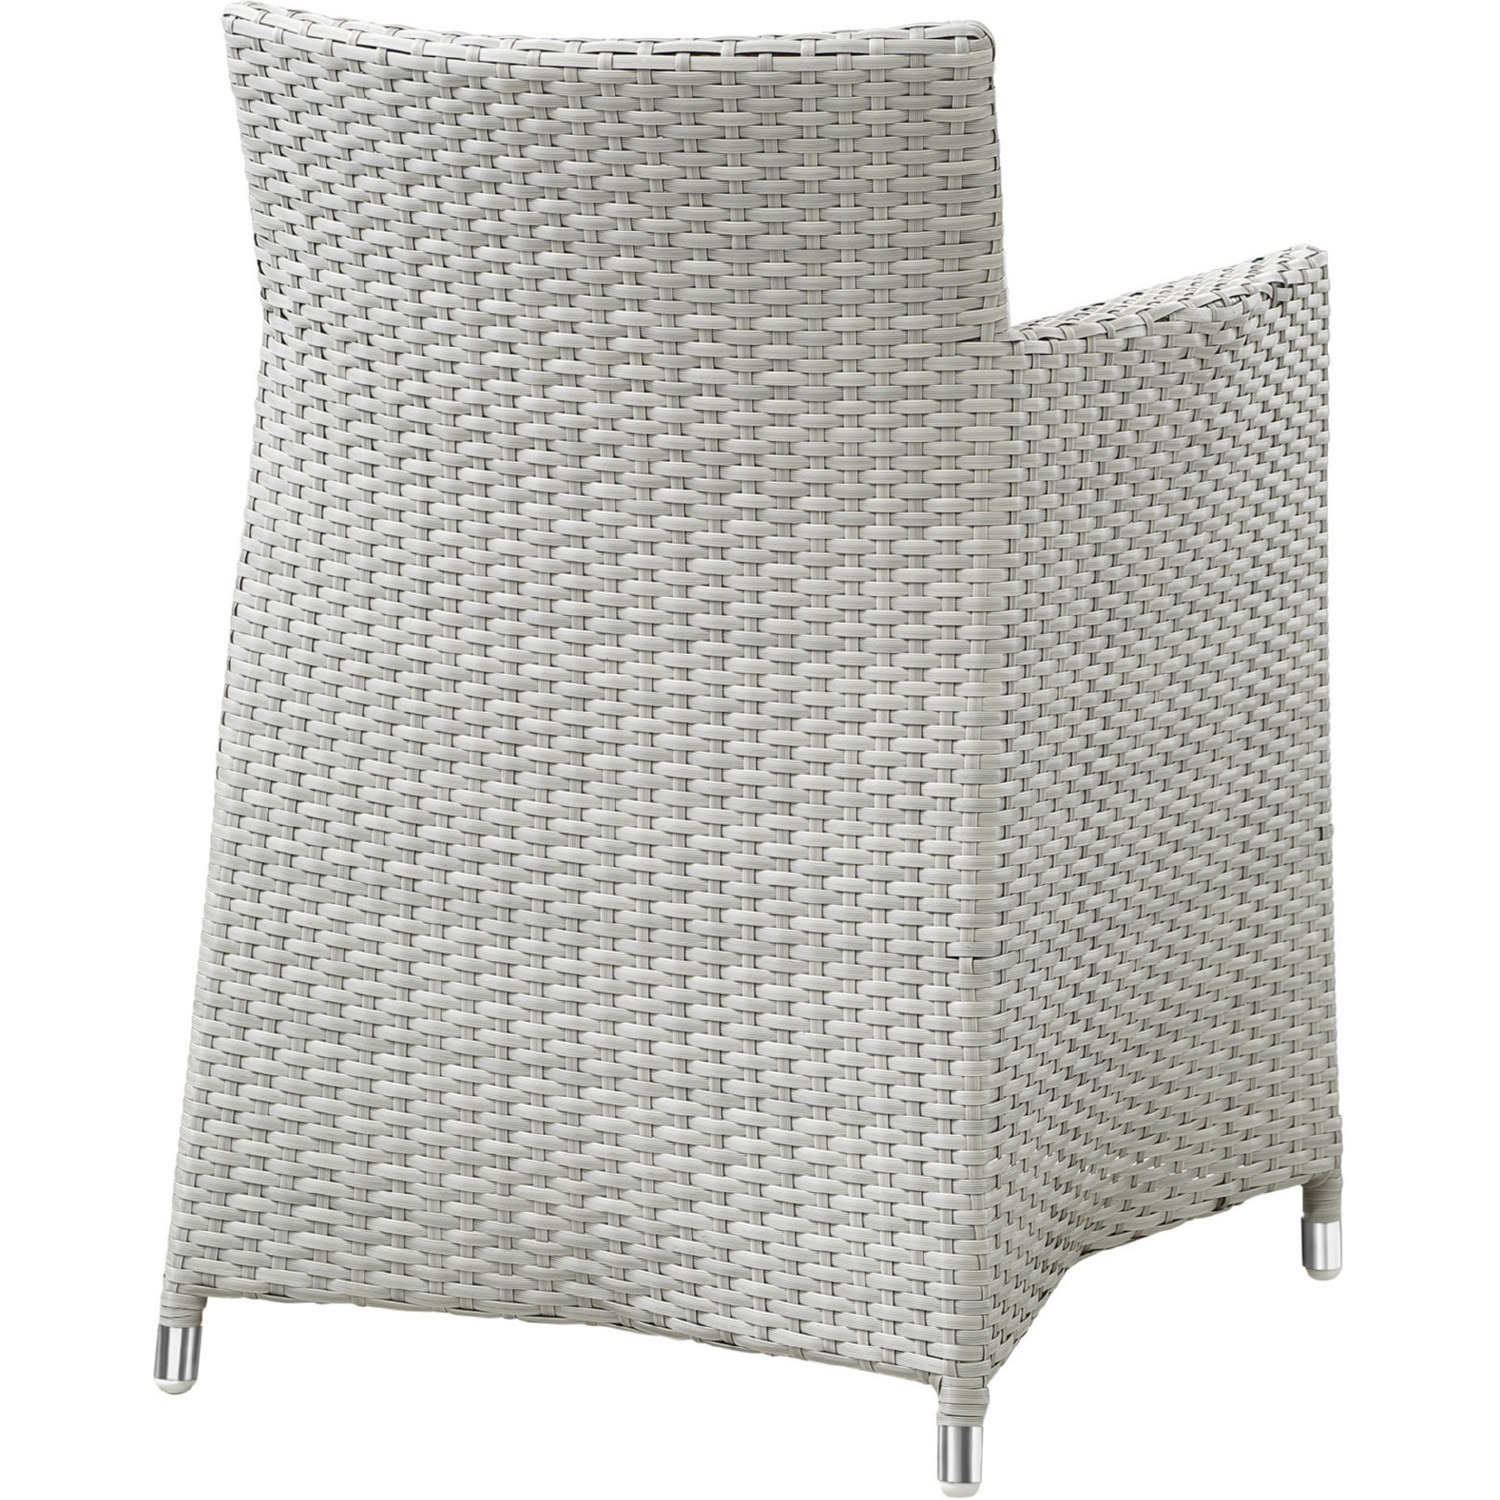 Modern 5-Piece Dining Set In Gray Rattan Weave - image-3